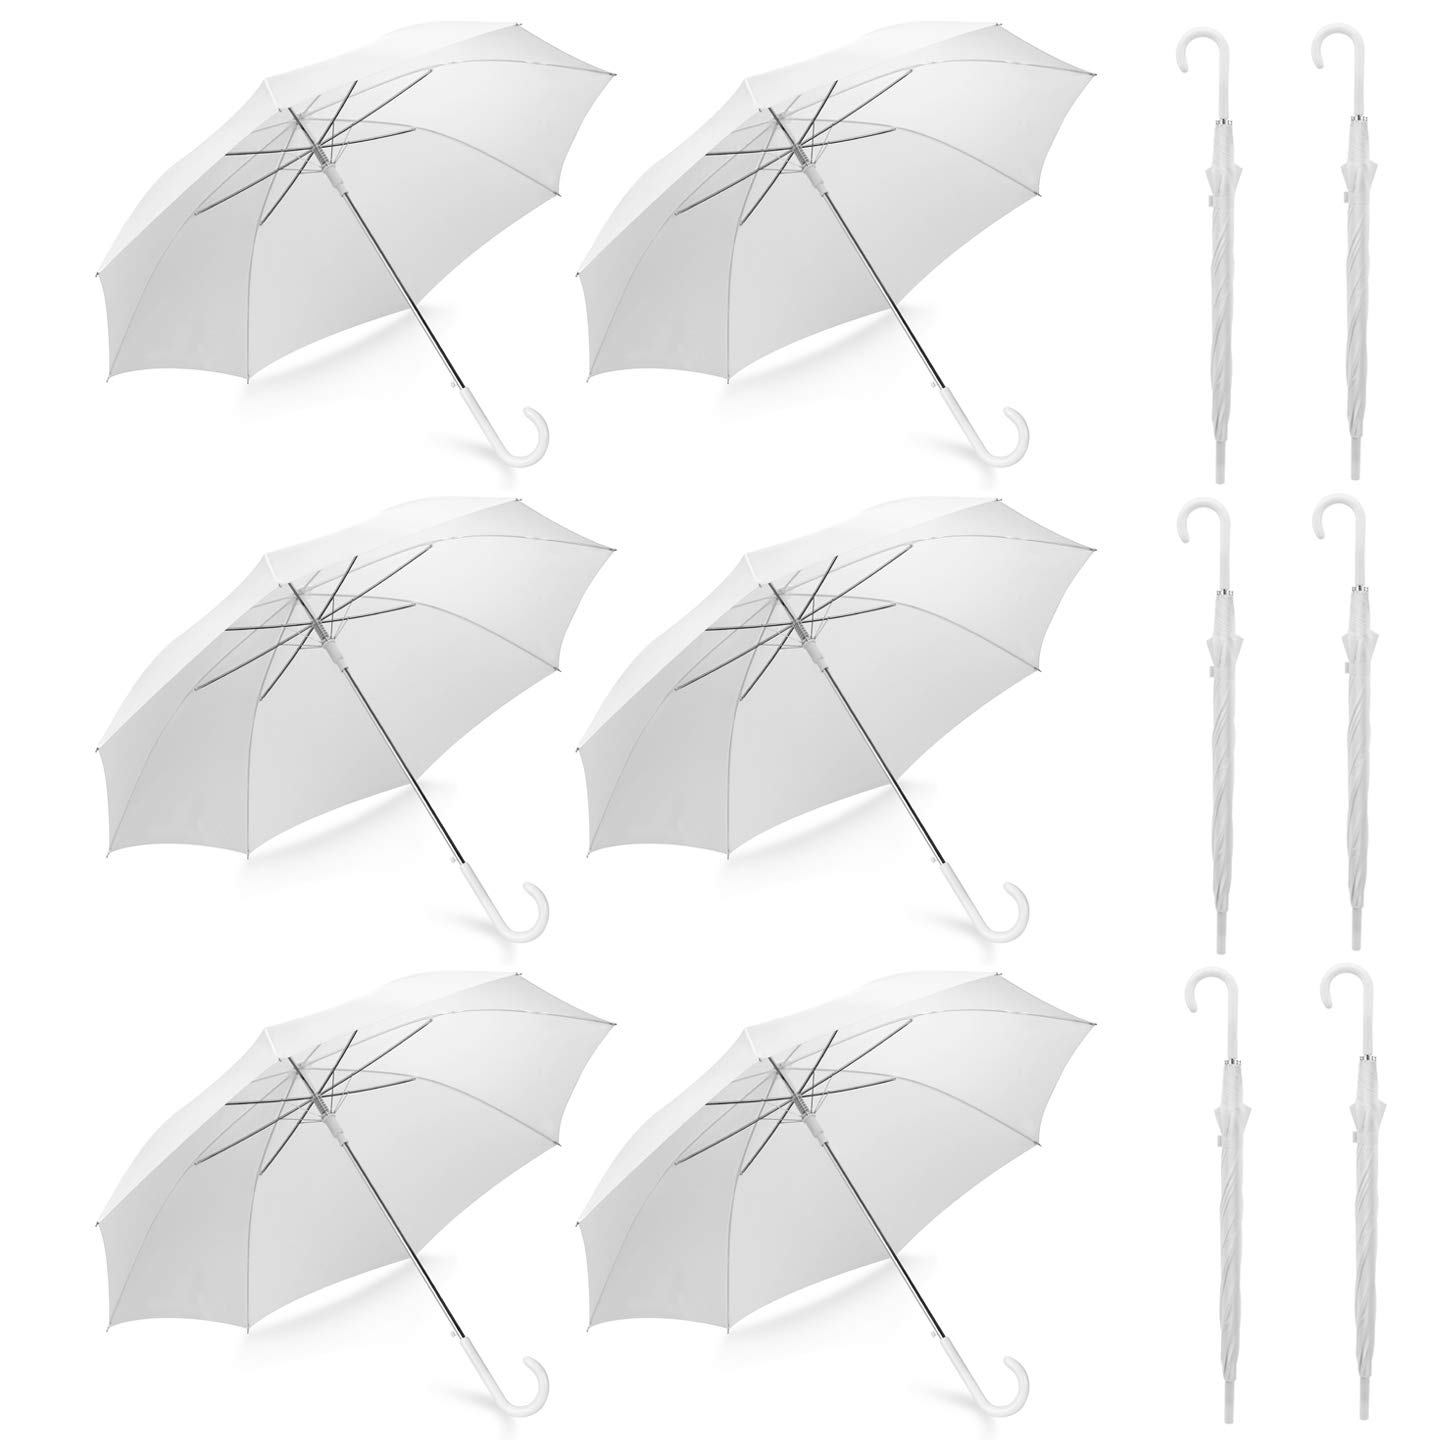 Pack of 12 Wedding Style Stick Umbrellas Large Canopy Windproof Auto Open J Hook Handle in Bulk (Pearl White) by Liberty Imports